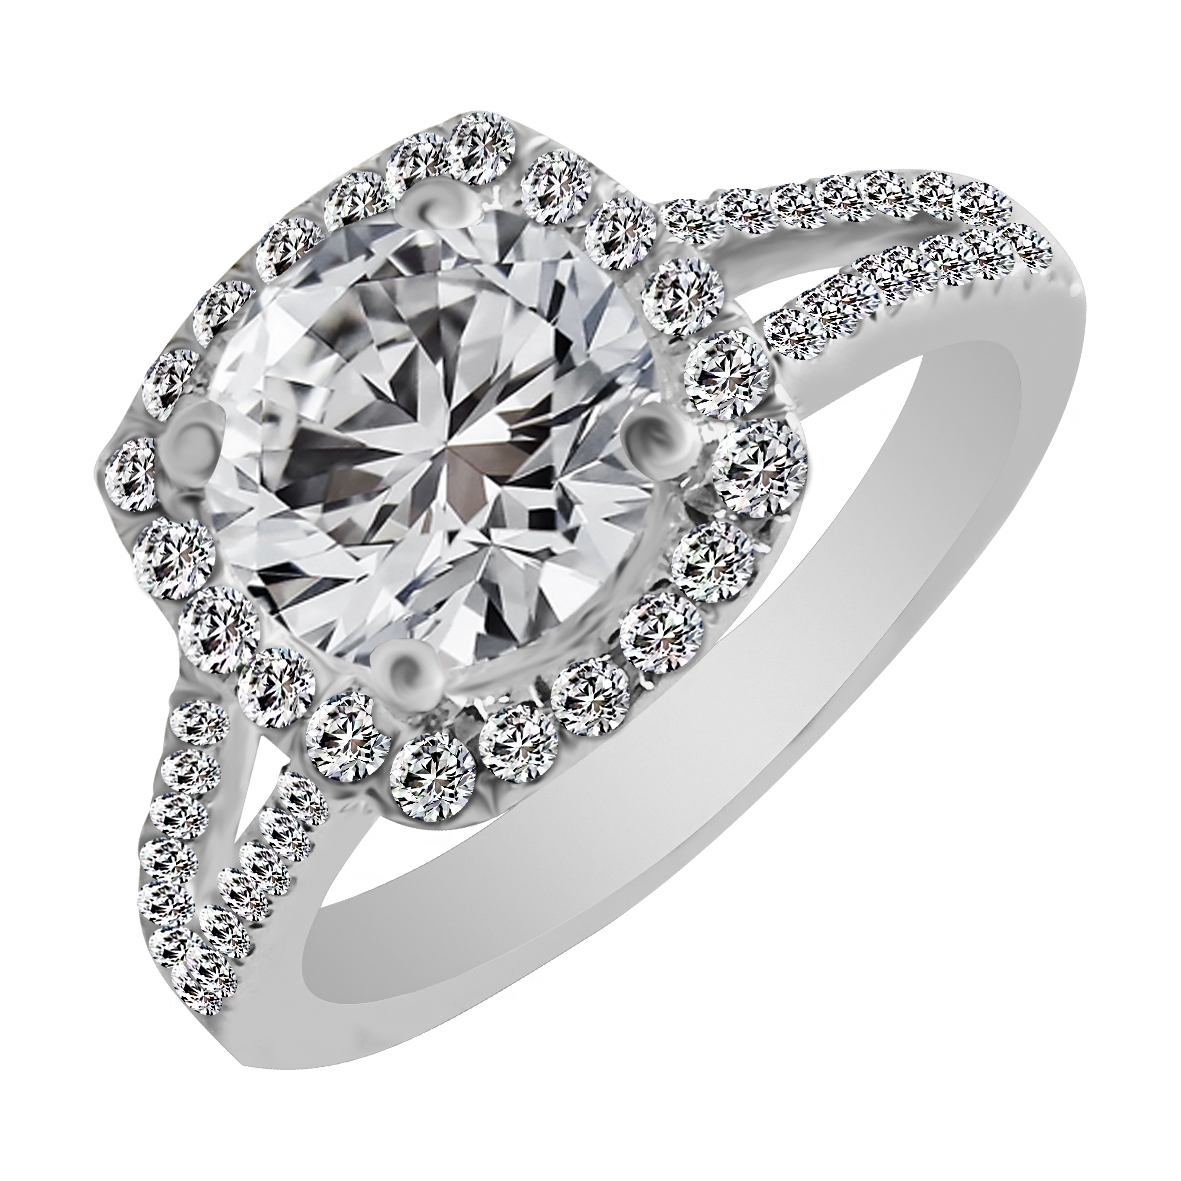 18kt White Gold Flush Prong Set Cluster With Solitaire Diamond Square Ring-5APCA